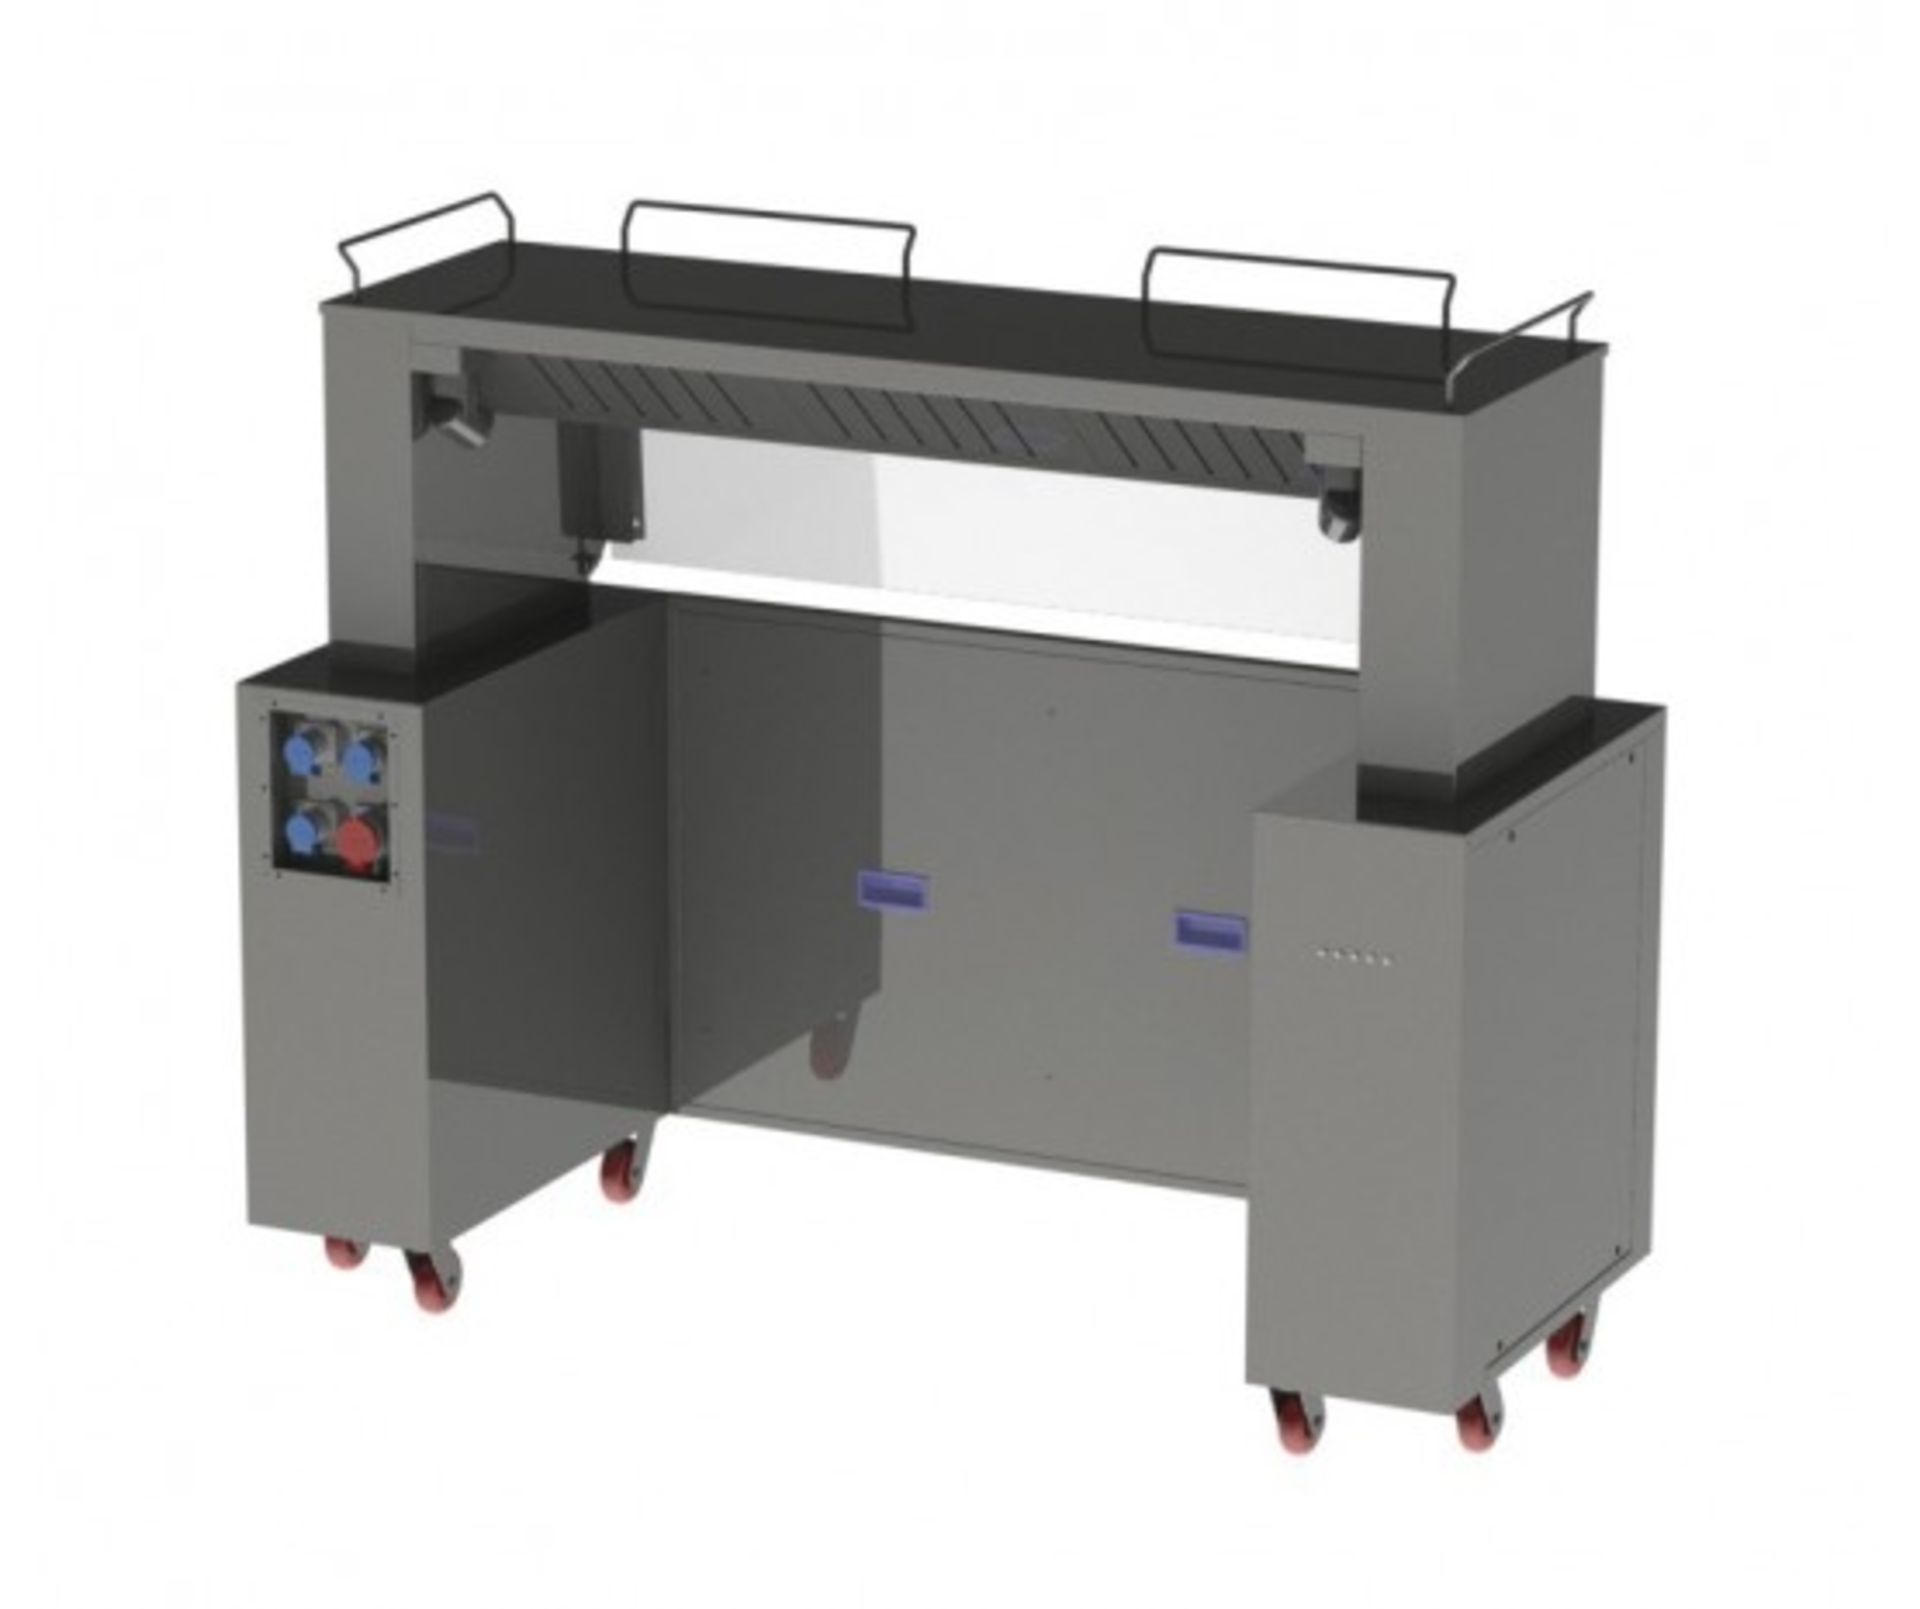 Lot 3 - Front cooking station RMBEFCS-03 with carbon filtration, ideal for show cooking, 3 phase electric, n